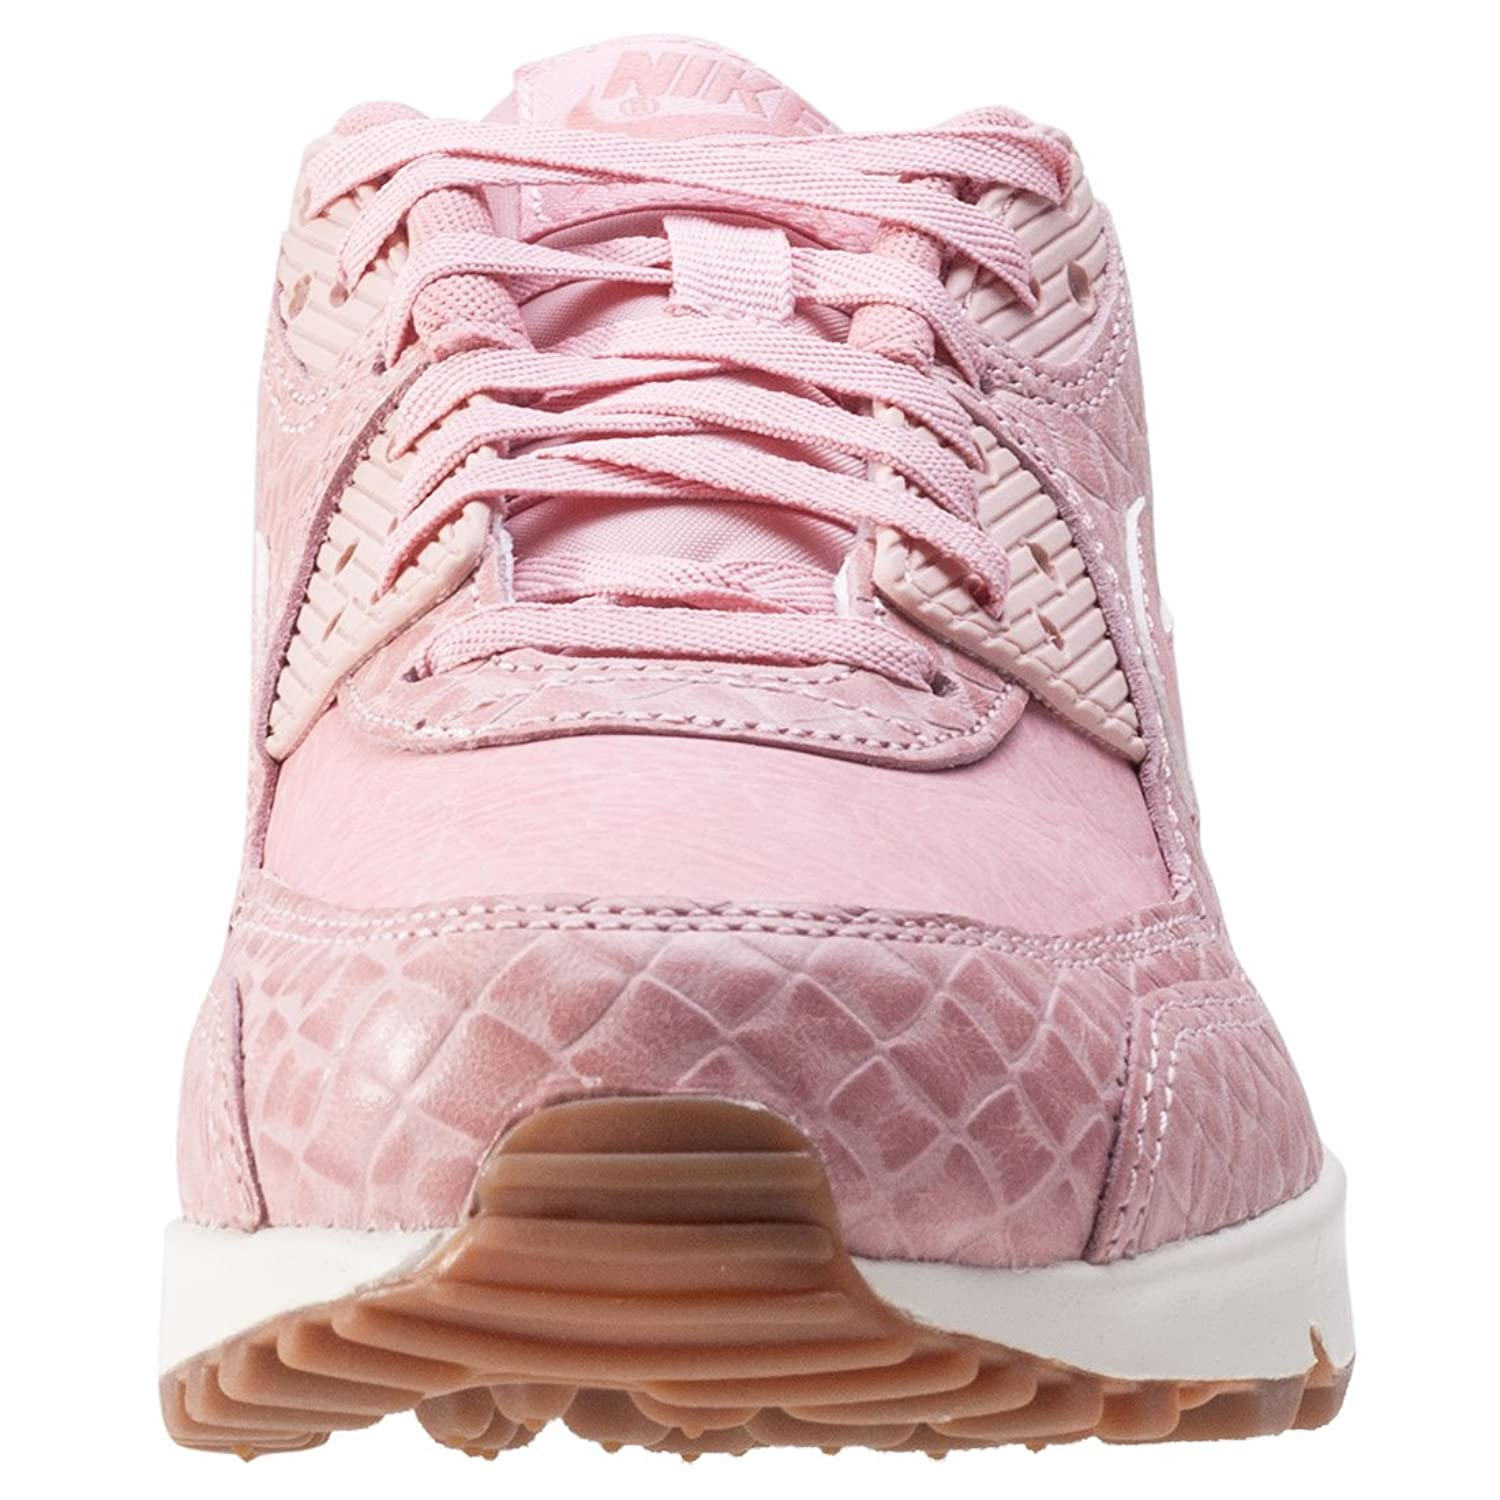 Nike Air Max 90 Premium Womens Trainers Blush Pink - 7 UK: Amazon.co.uk:  Shoes & Bags